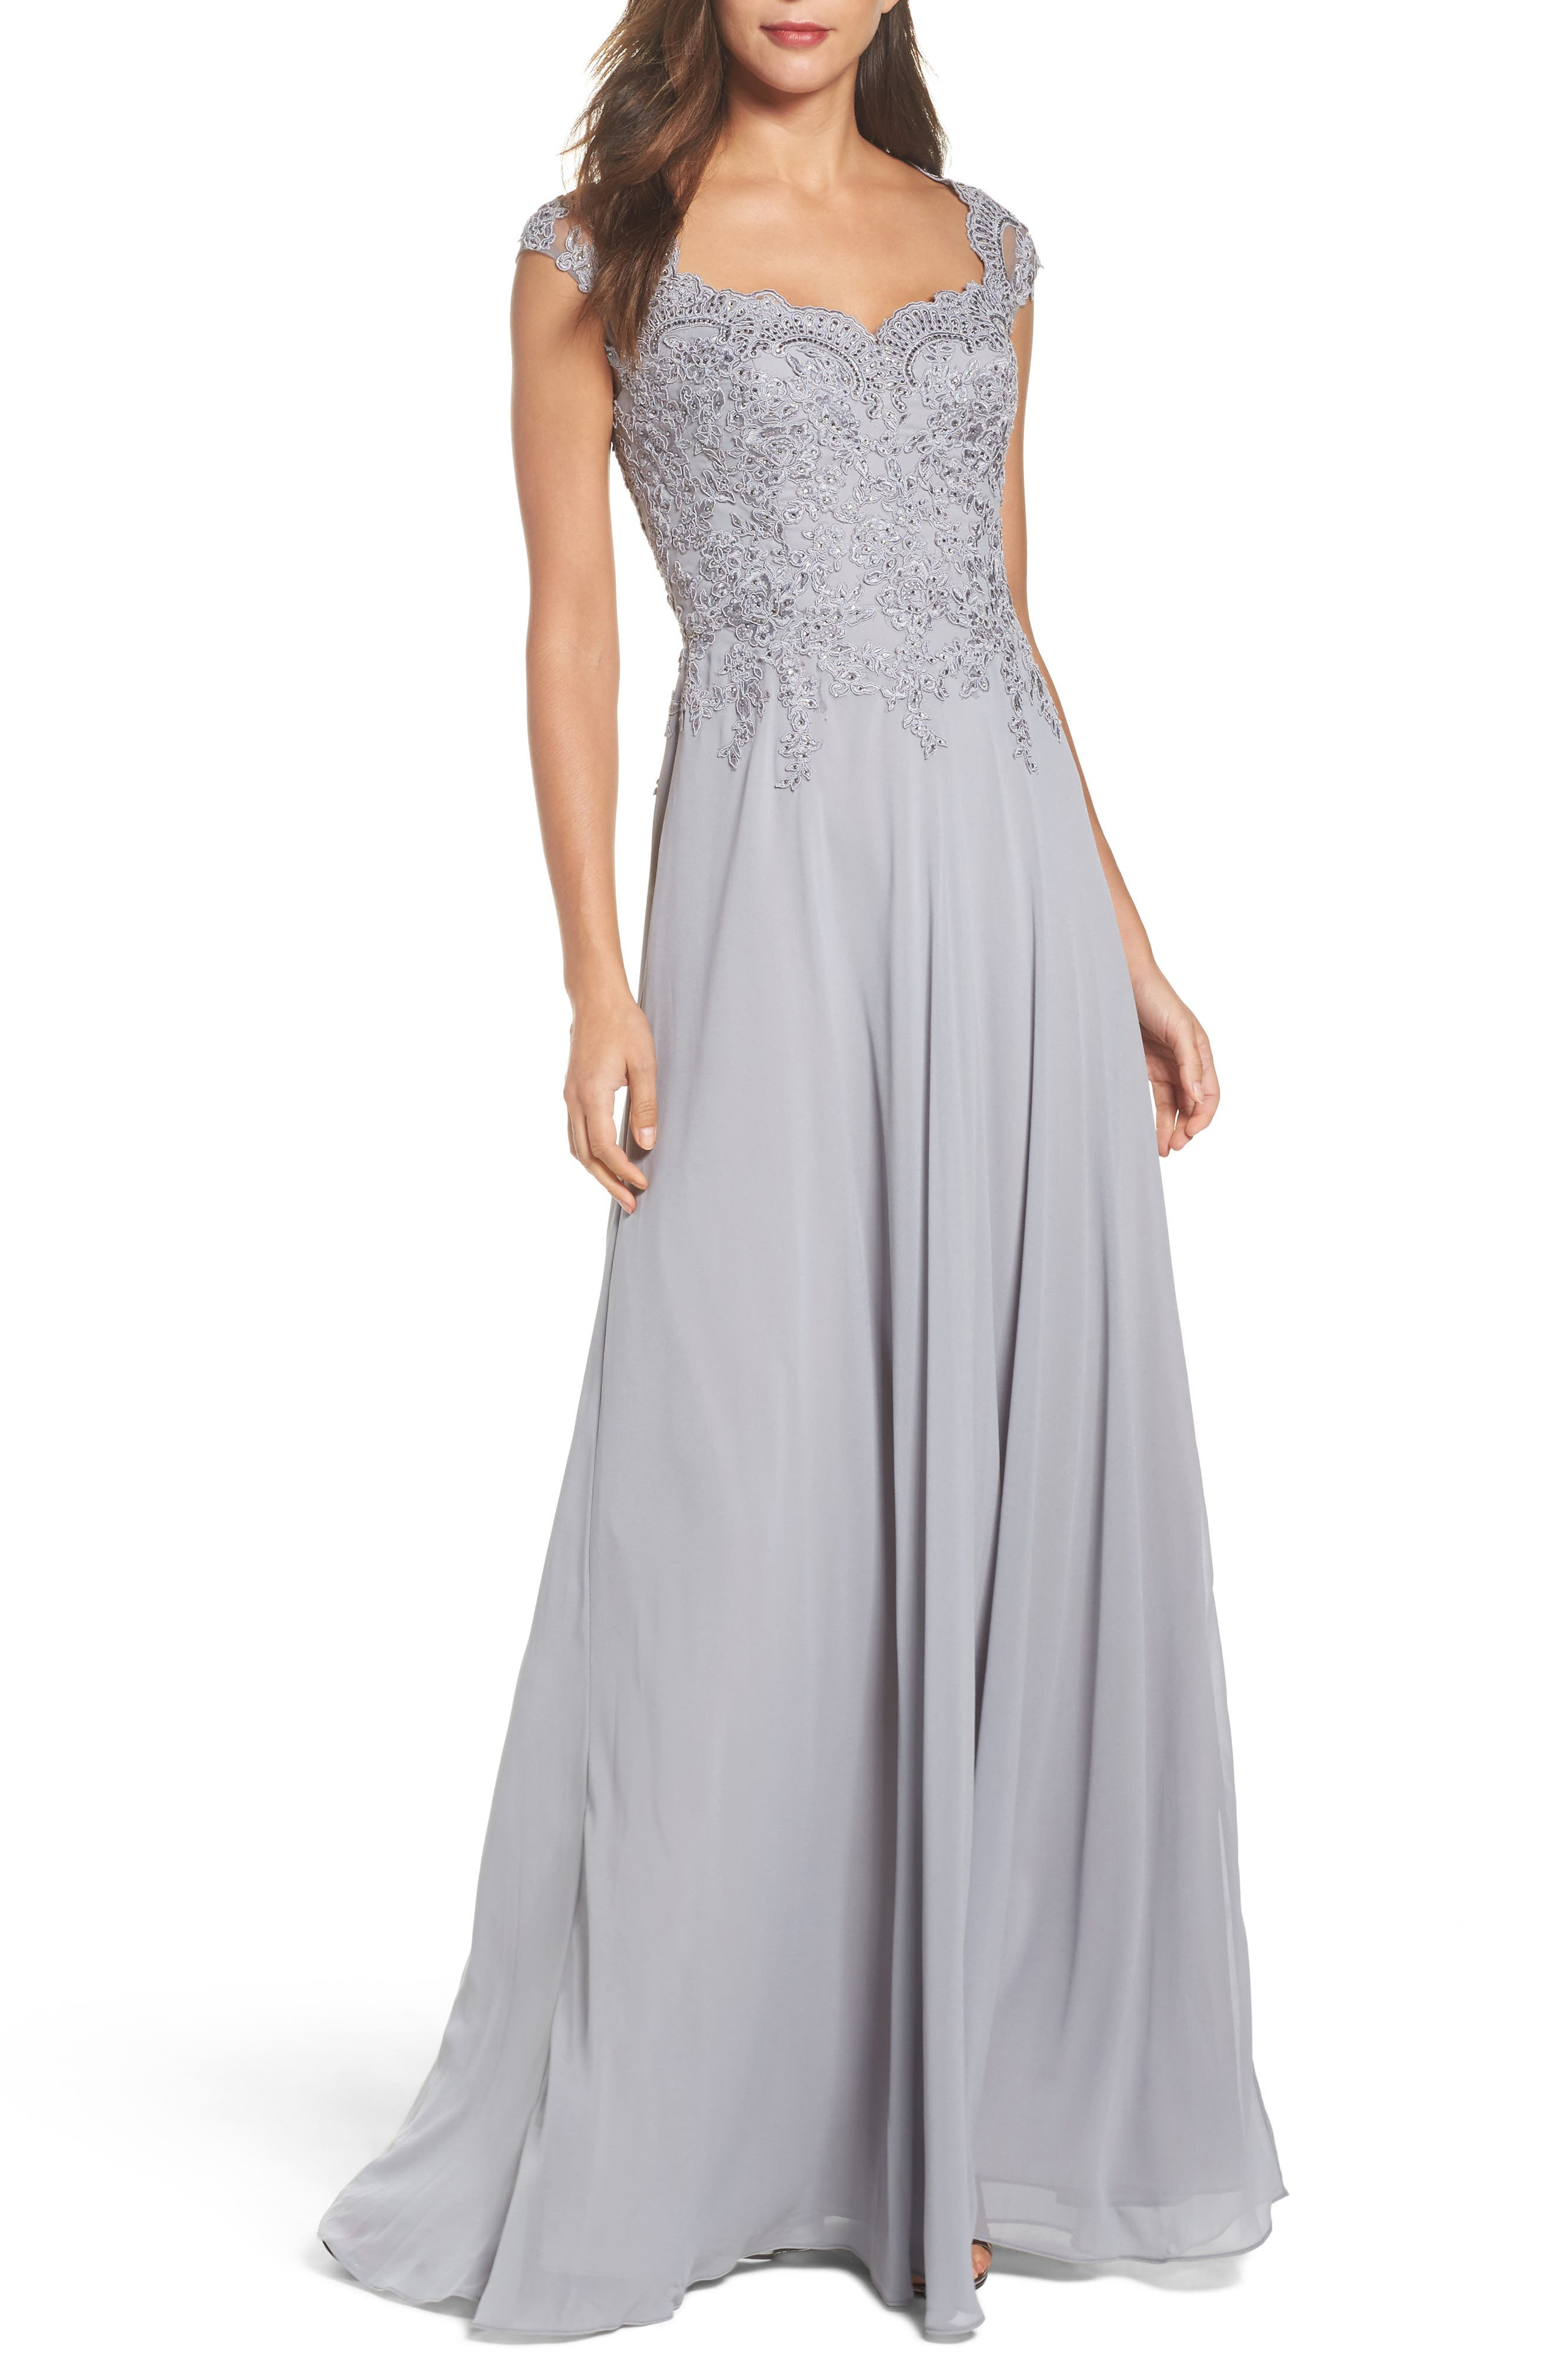 LA FEMME Embellished Cap Sleeve Gown, Main, color, 040